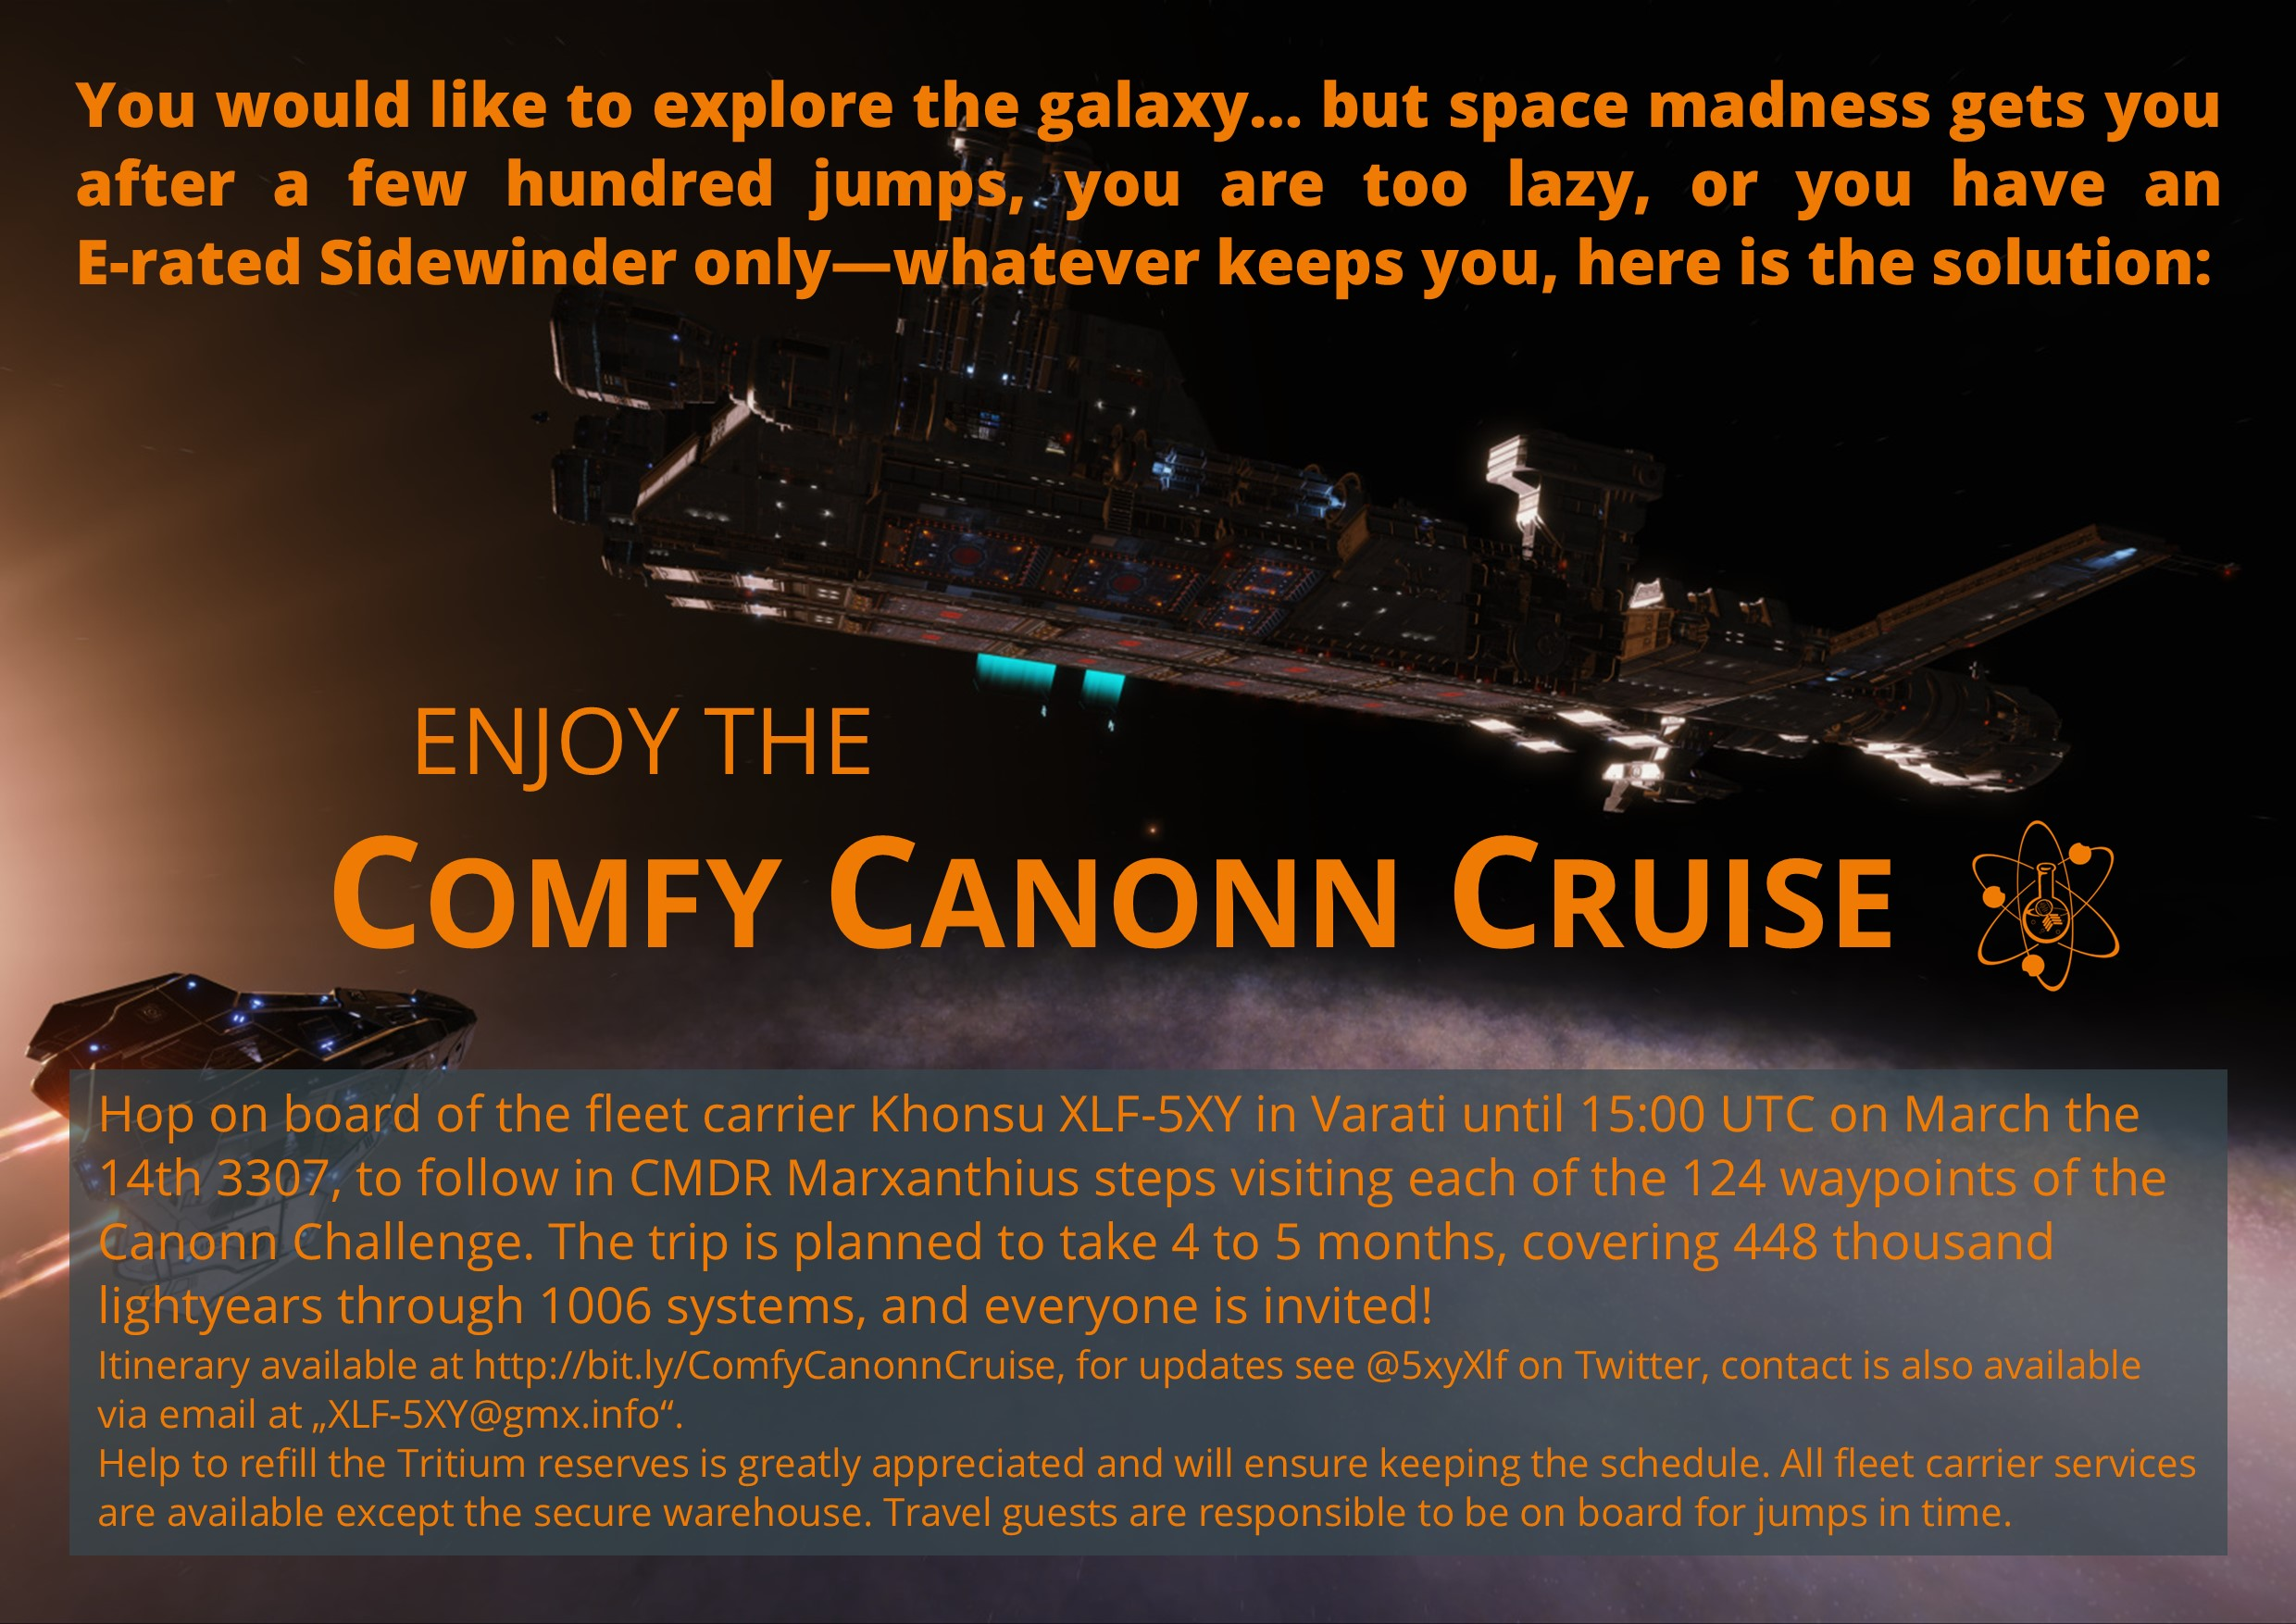 Enjoy the Comfy Canonn Cruise